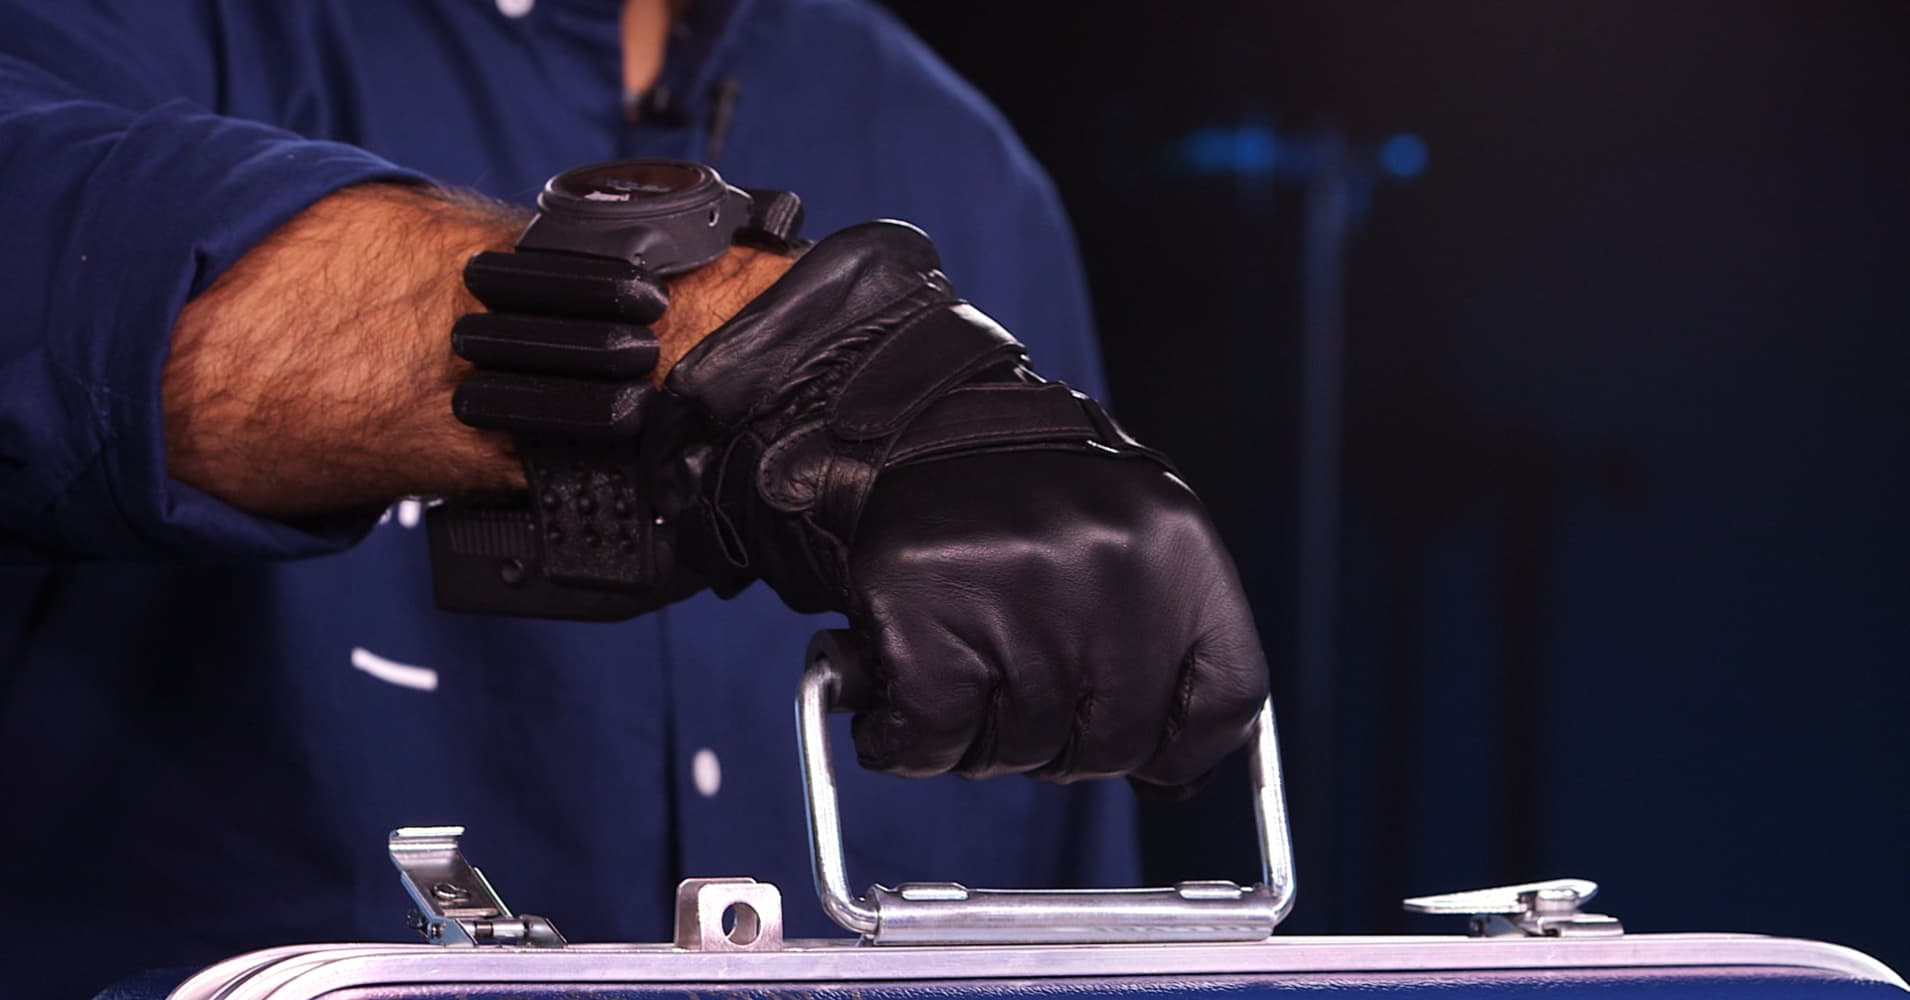 This Robotic Smart Glove is like Wearing a Bionic Hand